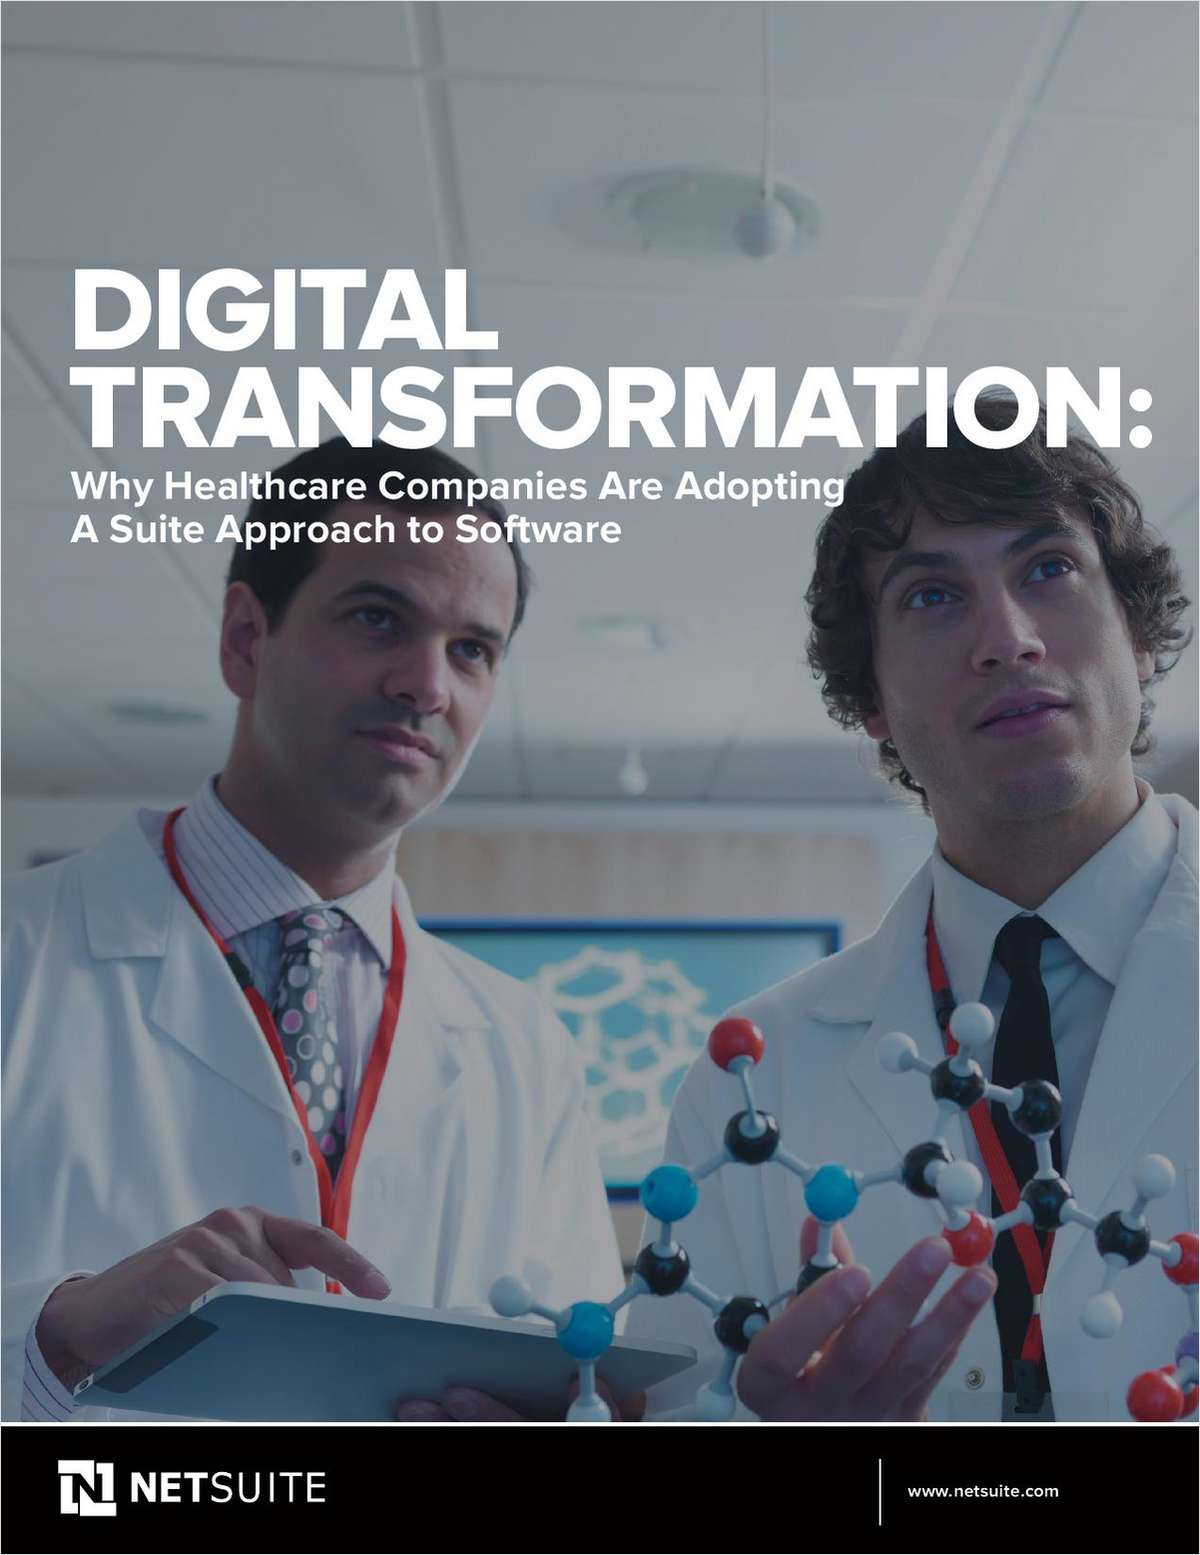 Digital Transformation: Why Healthcare Companies Are Adopting A Suite Approach to Software